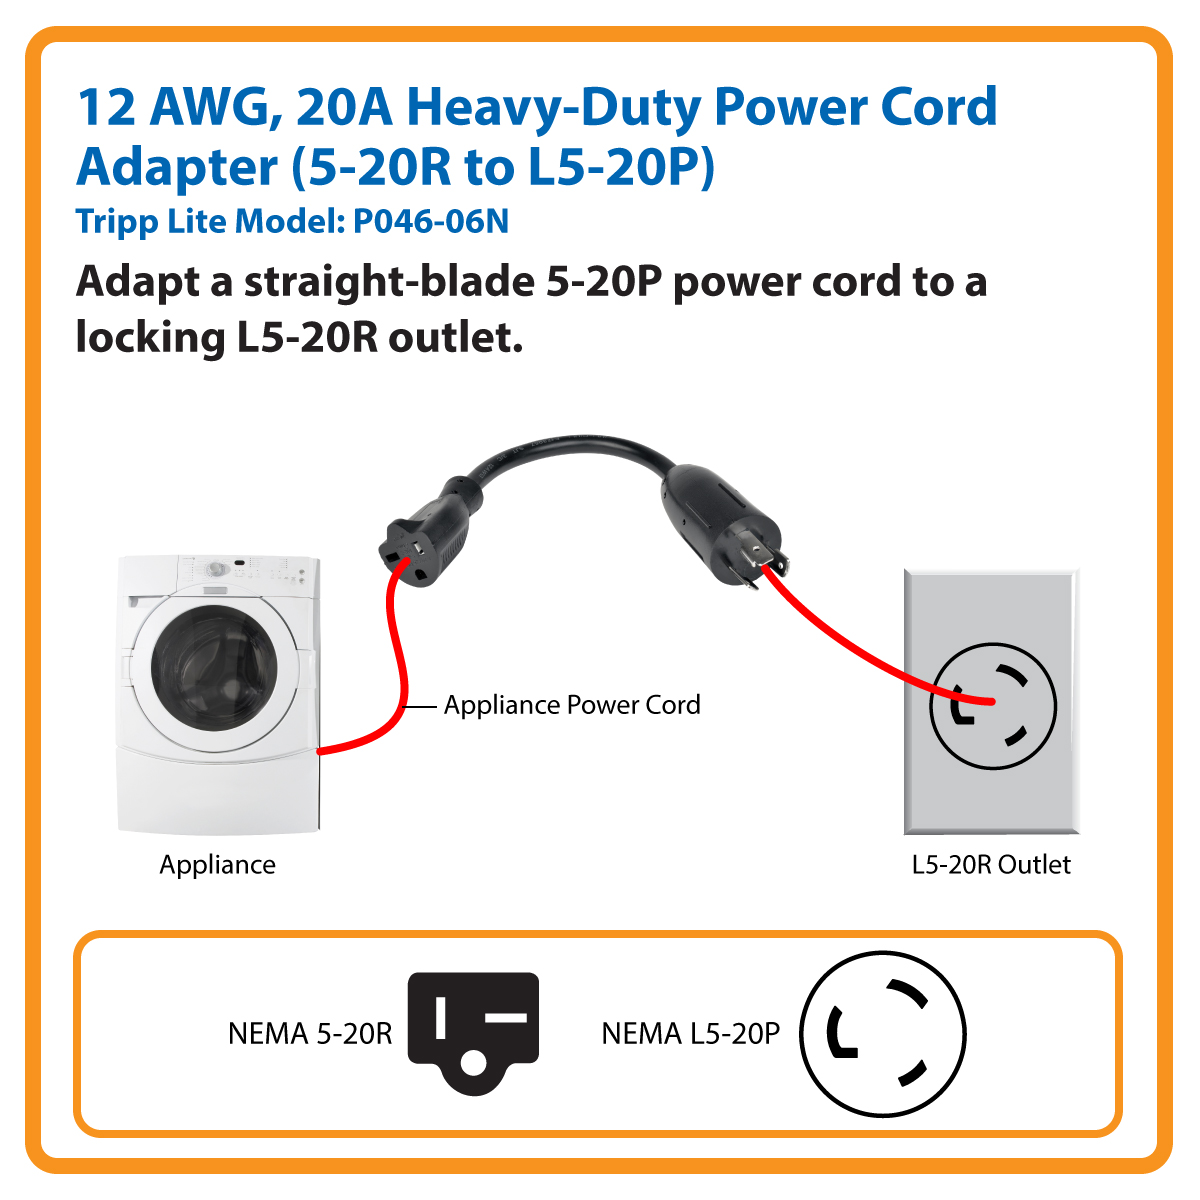 hight resolution of tripp lite 6in power cord adapter cable l5 20p to 5 20r heavy duty 20a 12awg 6 p046 06n c bles d alimentation inso ca